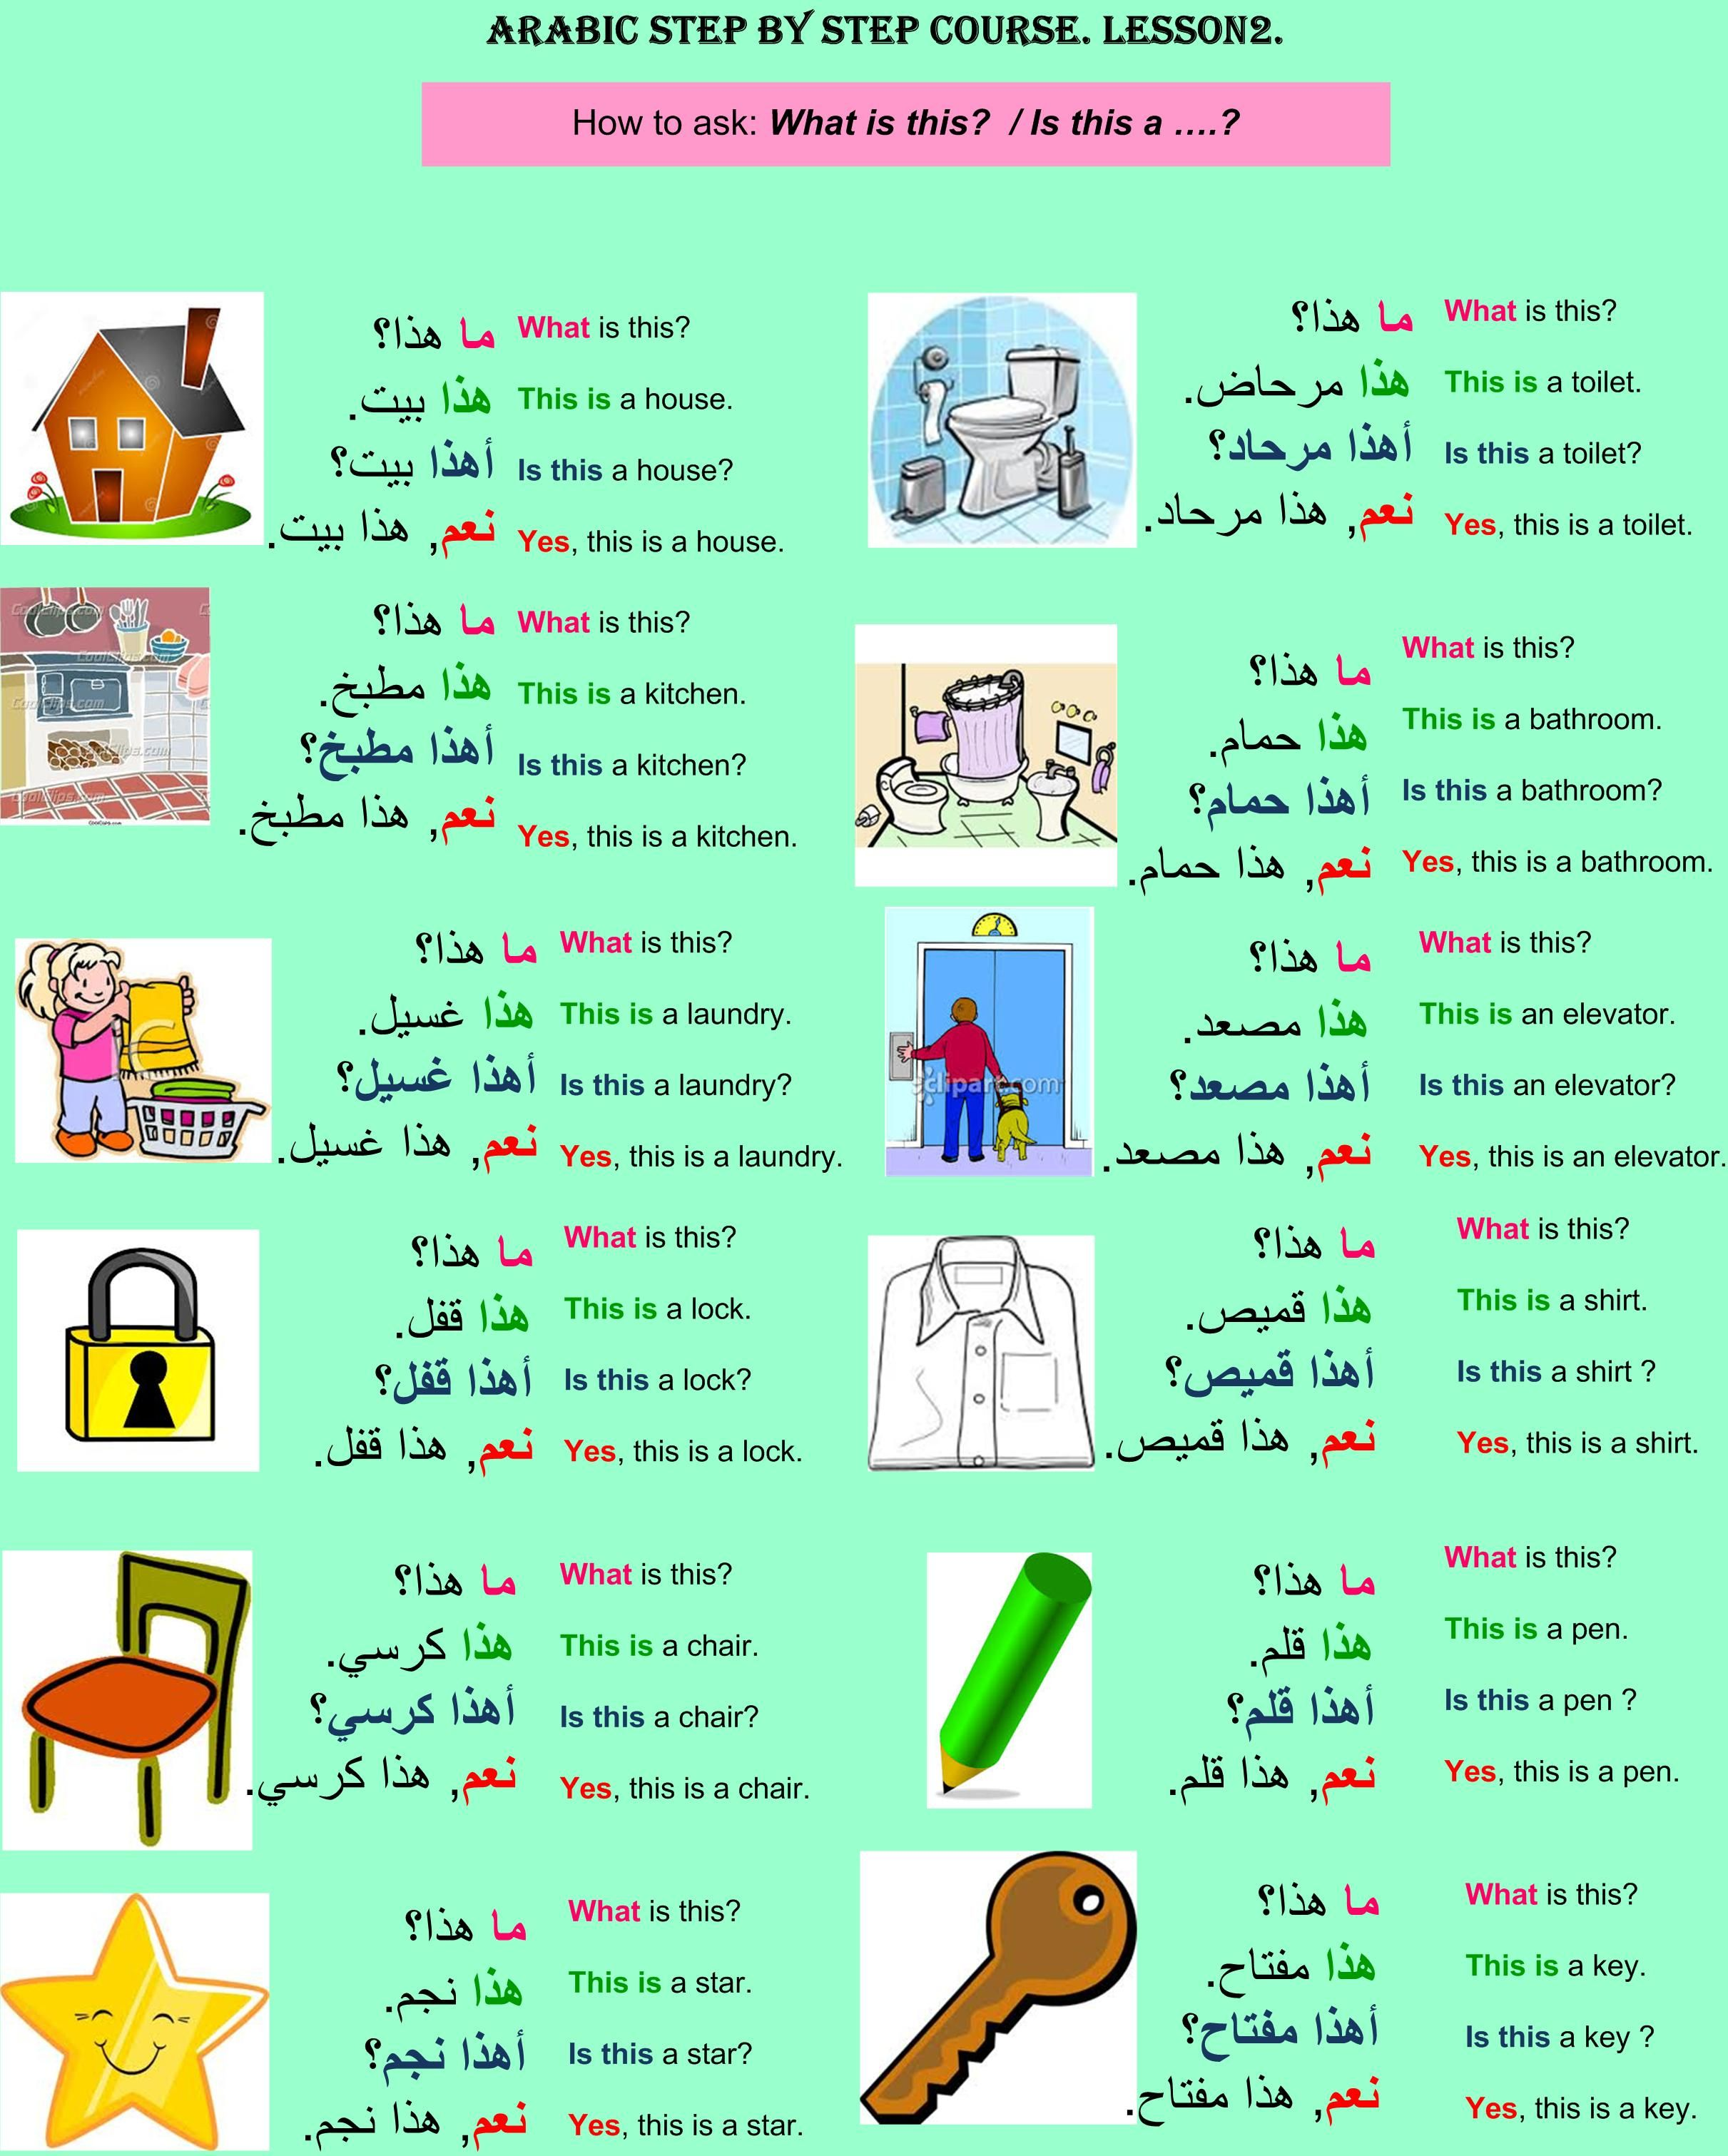 Arabic Step By Step Course Lesson 2